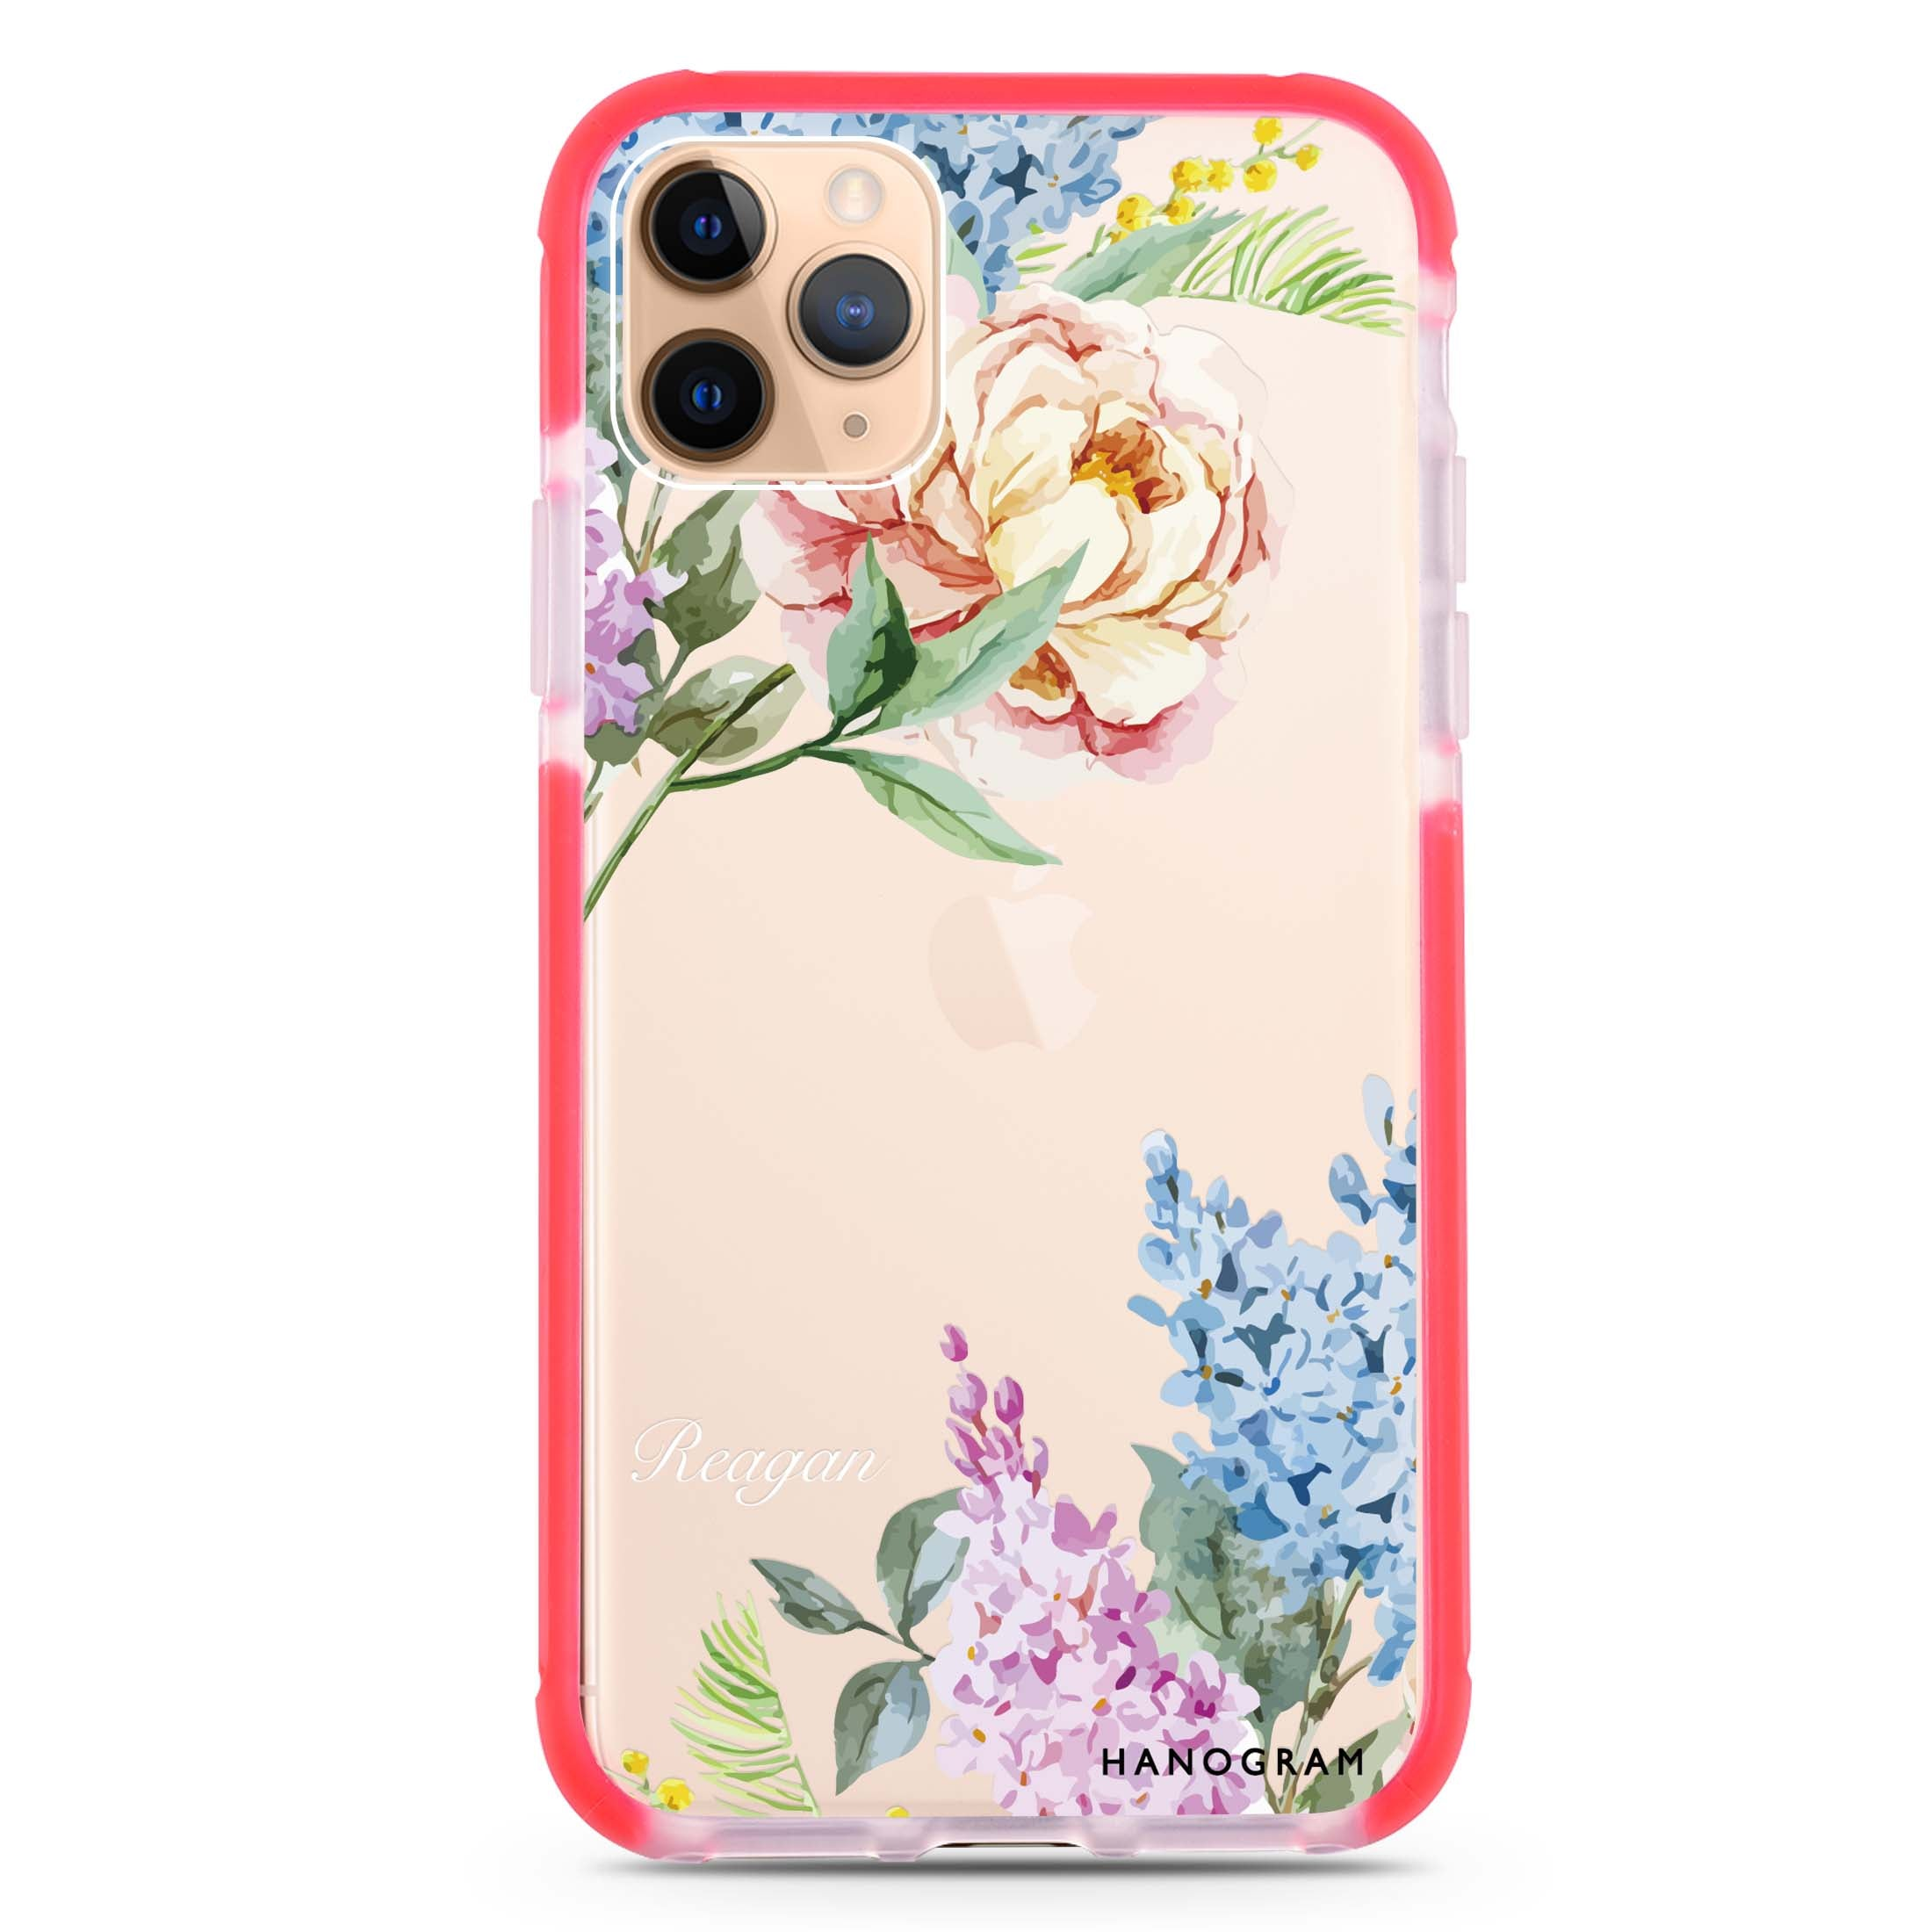 Tropical - Pink iPhone 11 case